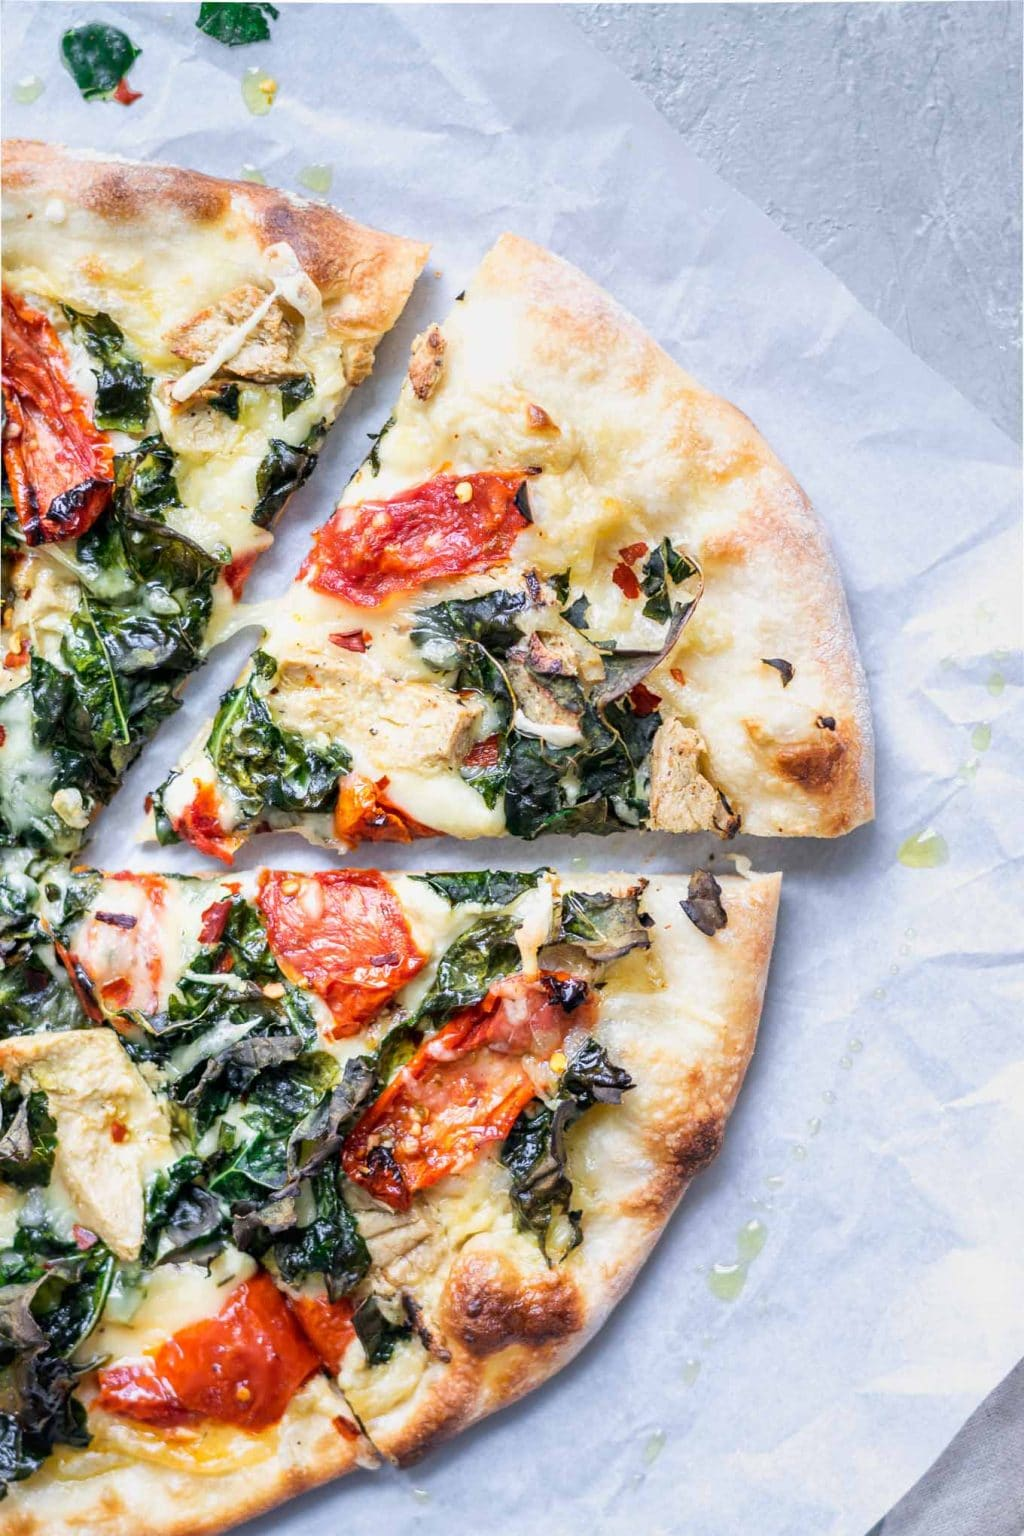 Slice of crispy kale, roasted tomato, and vegan chicken white sauce pizza